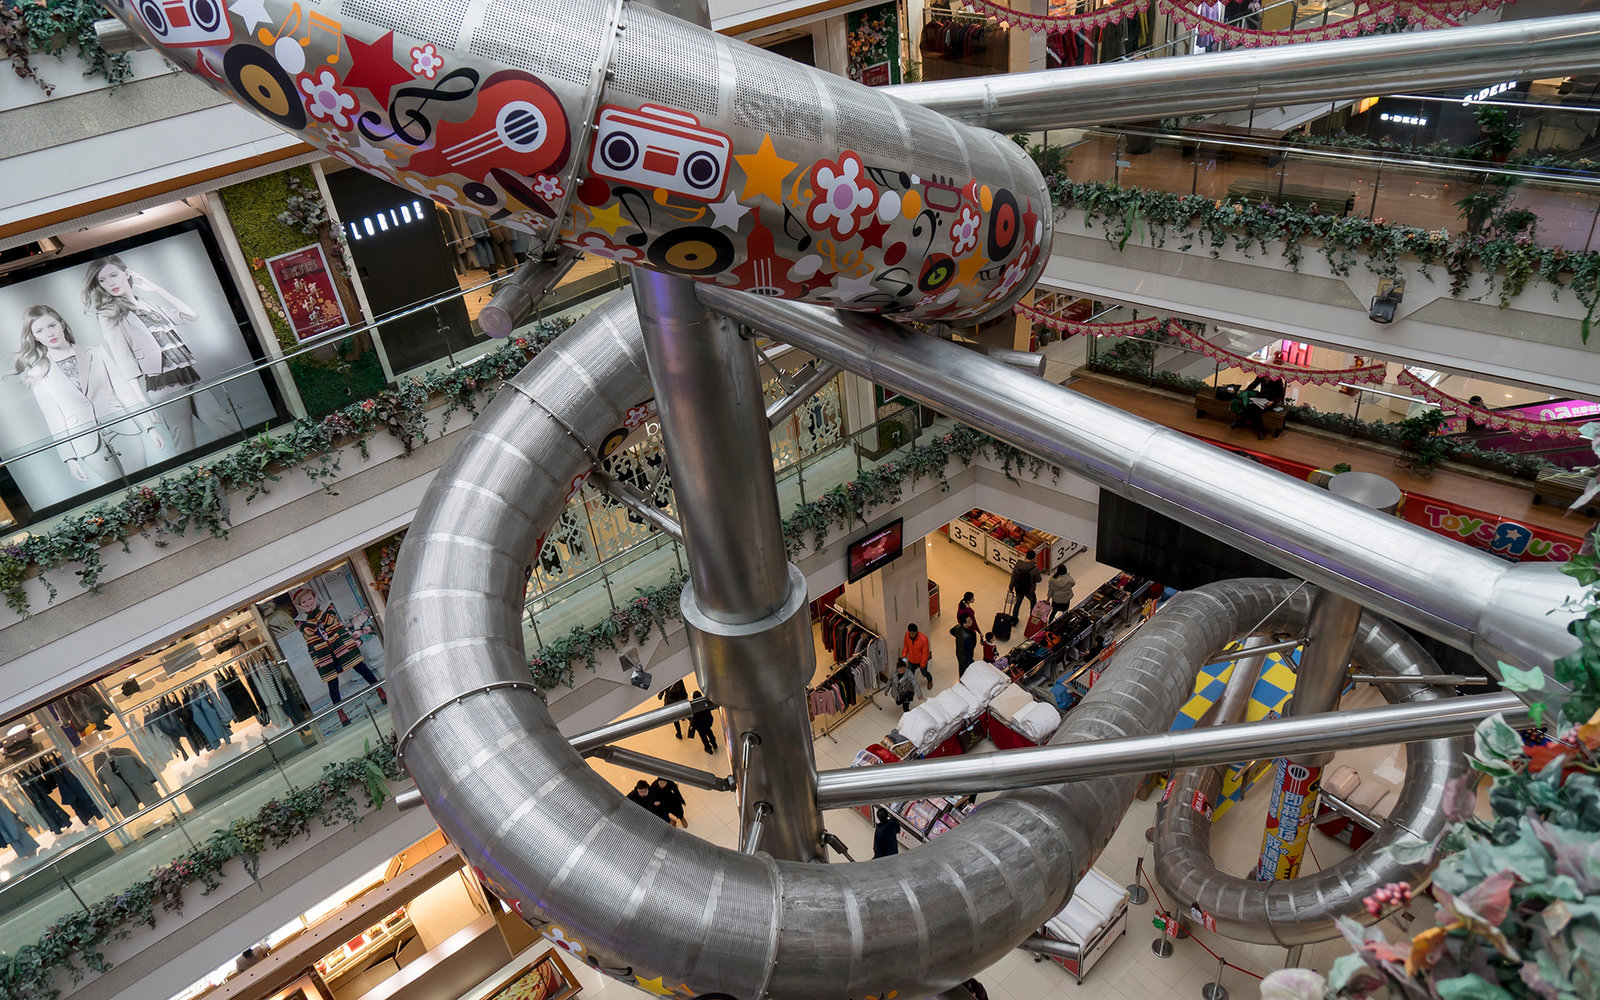 Forget Shopping, There's Five-Story Slide You Can Ride in a Shanghai Mall